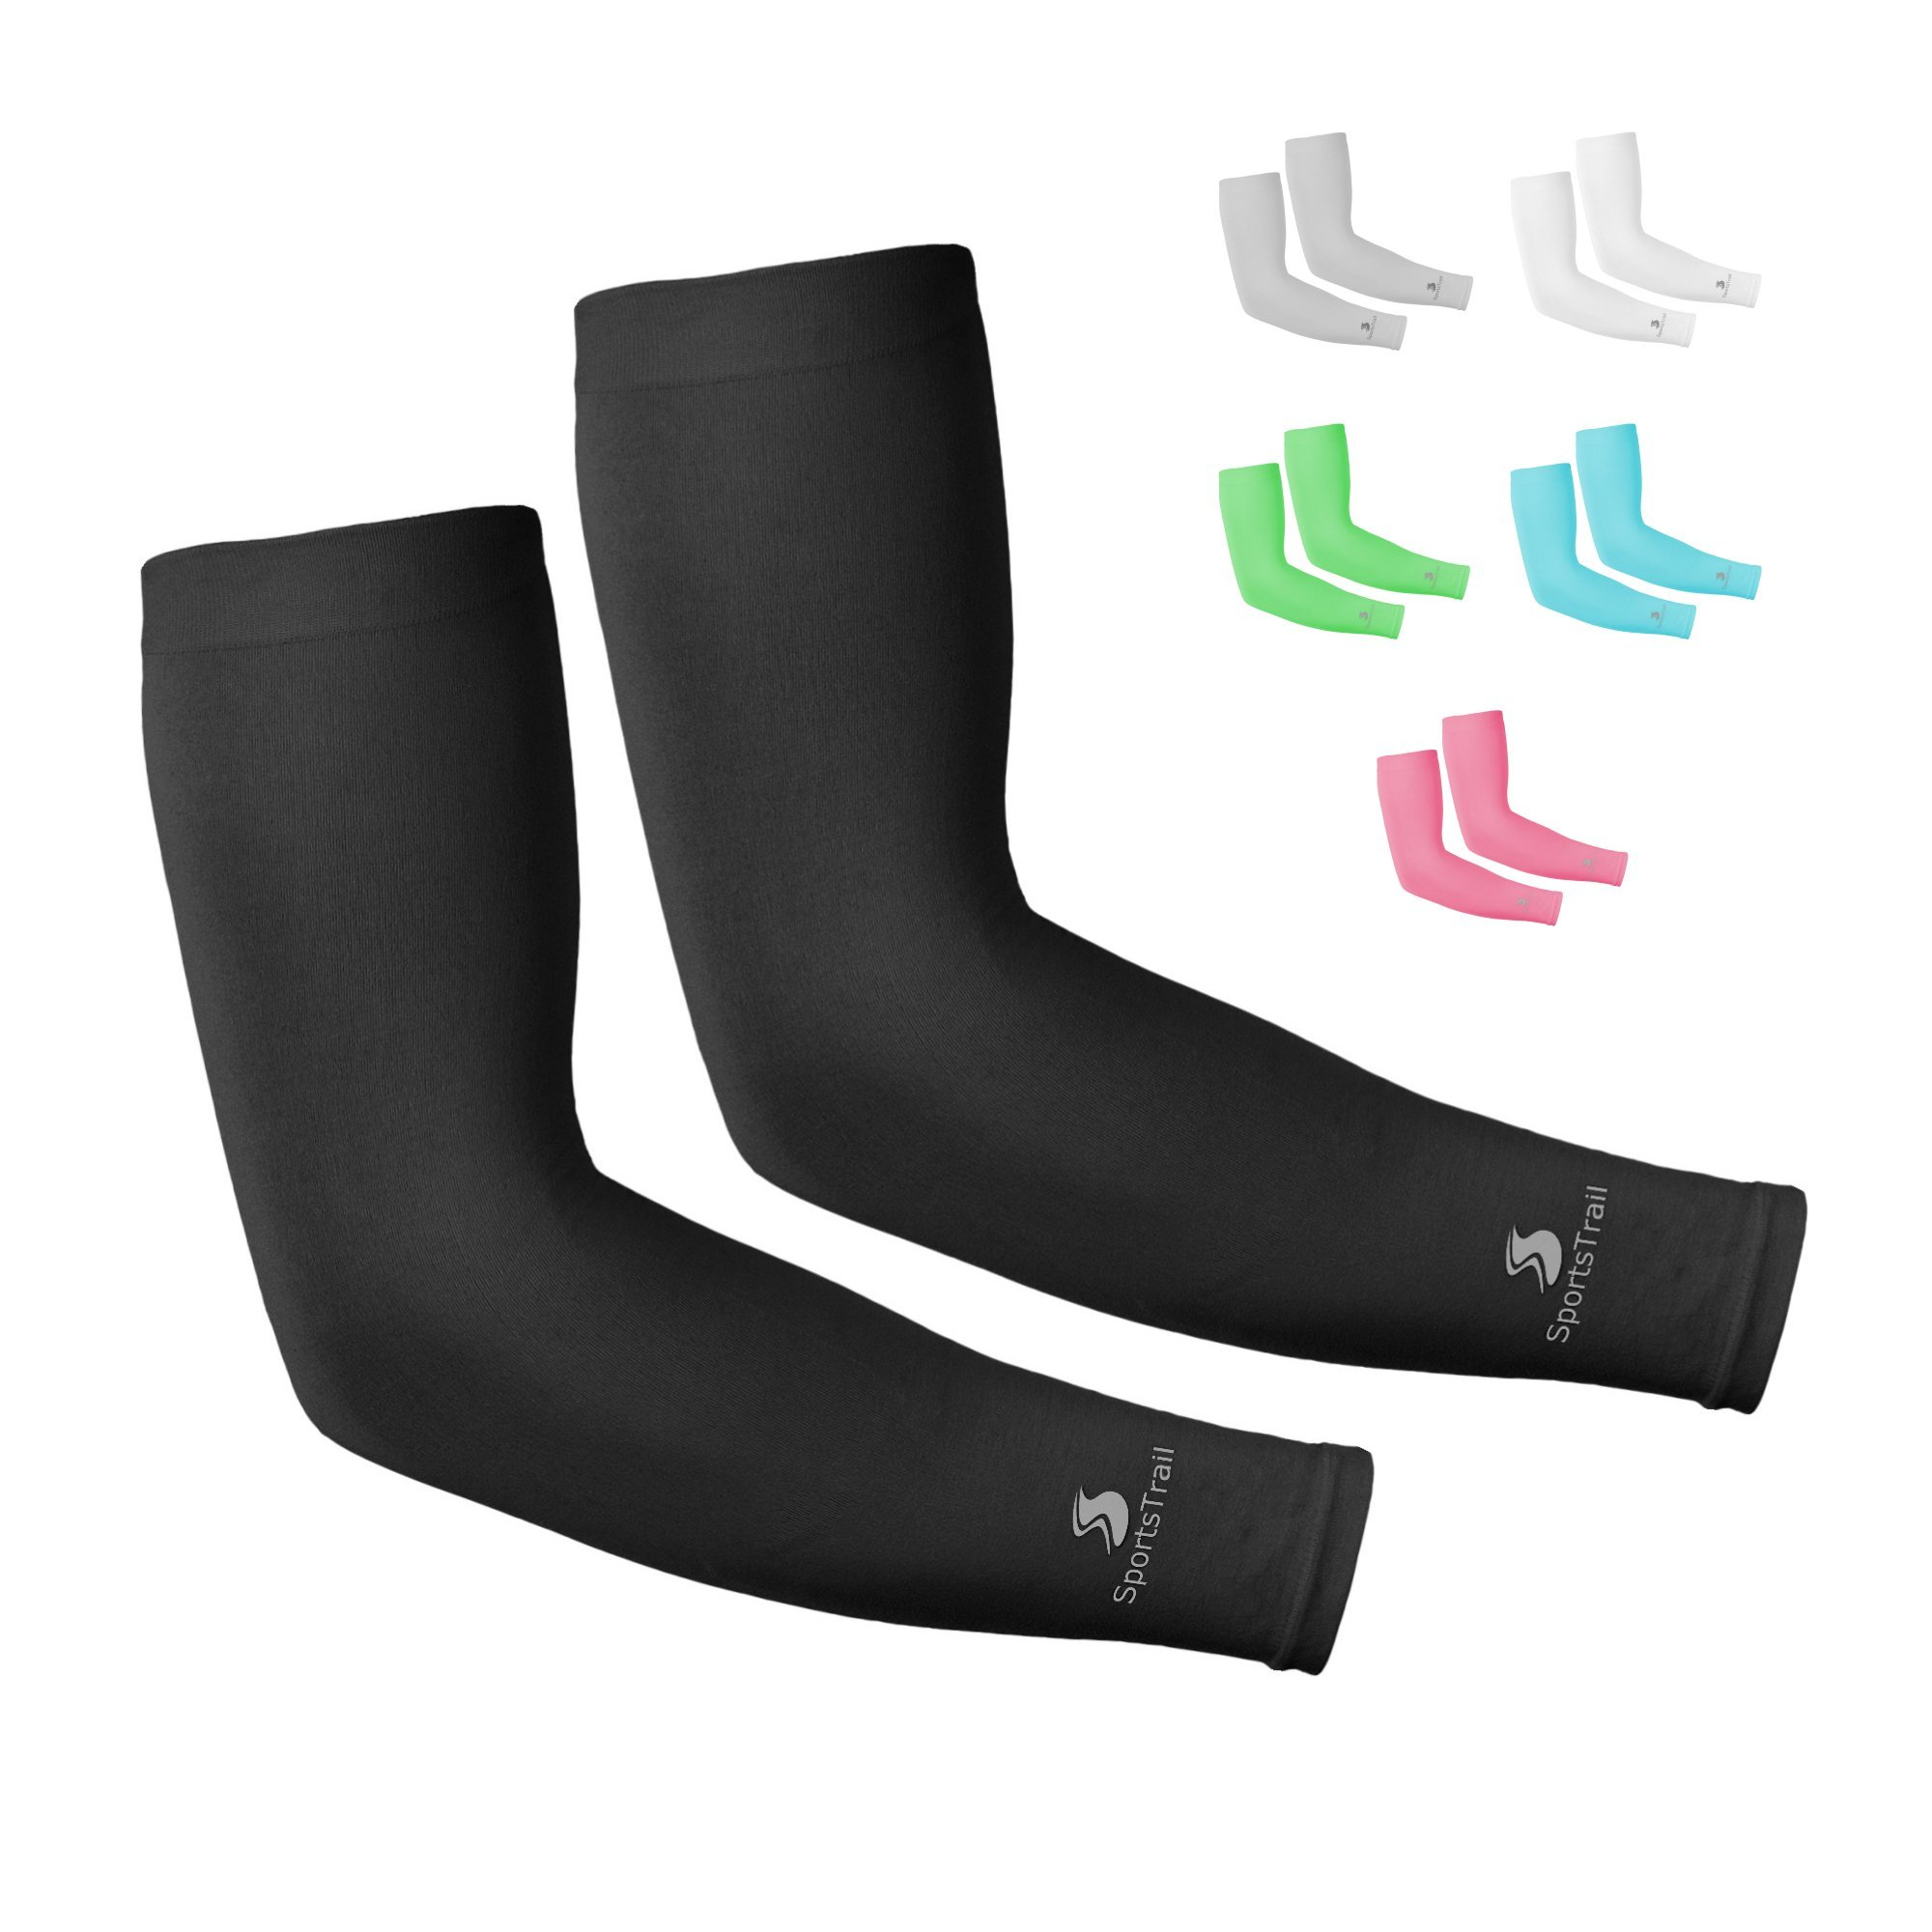 SportsTrail Arm Sleeves for Men & Women, Tatoo Cover up Sleeves to Cover Arms, 1 Pair (Black)